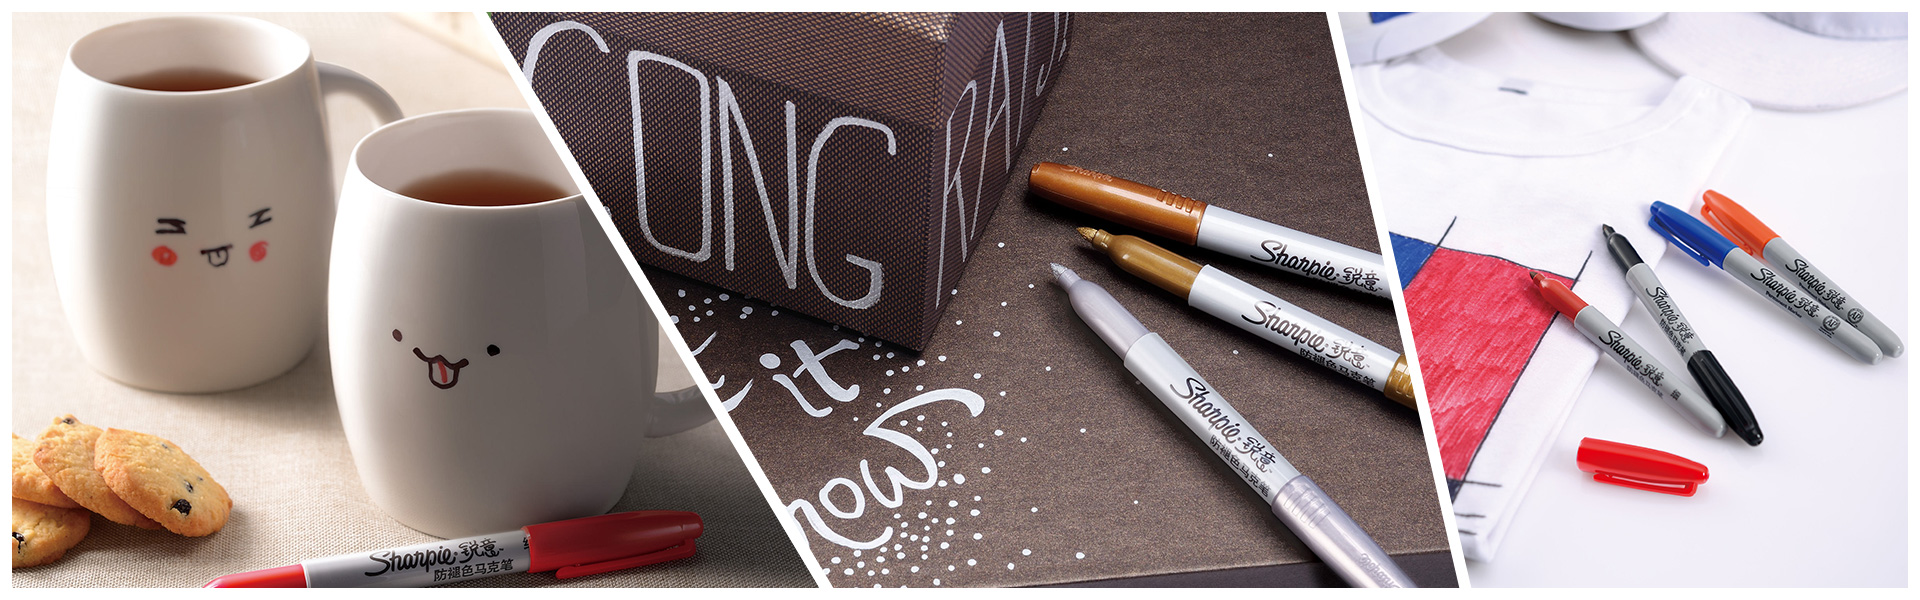 5 Fun Projects to Personalise with Sharpie Pens